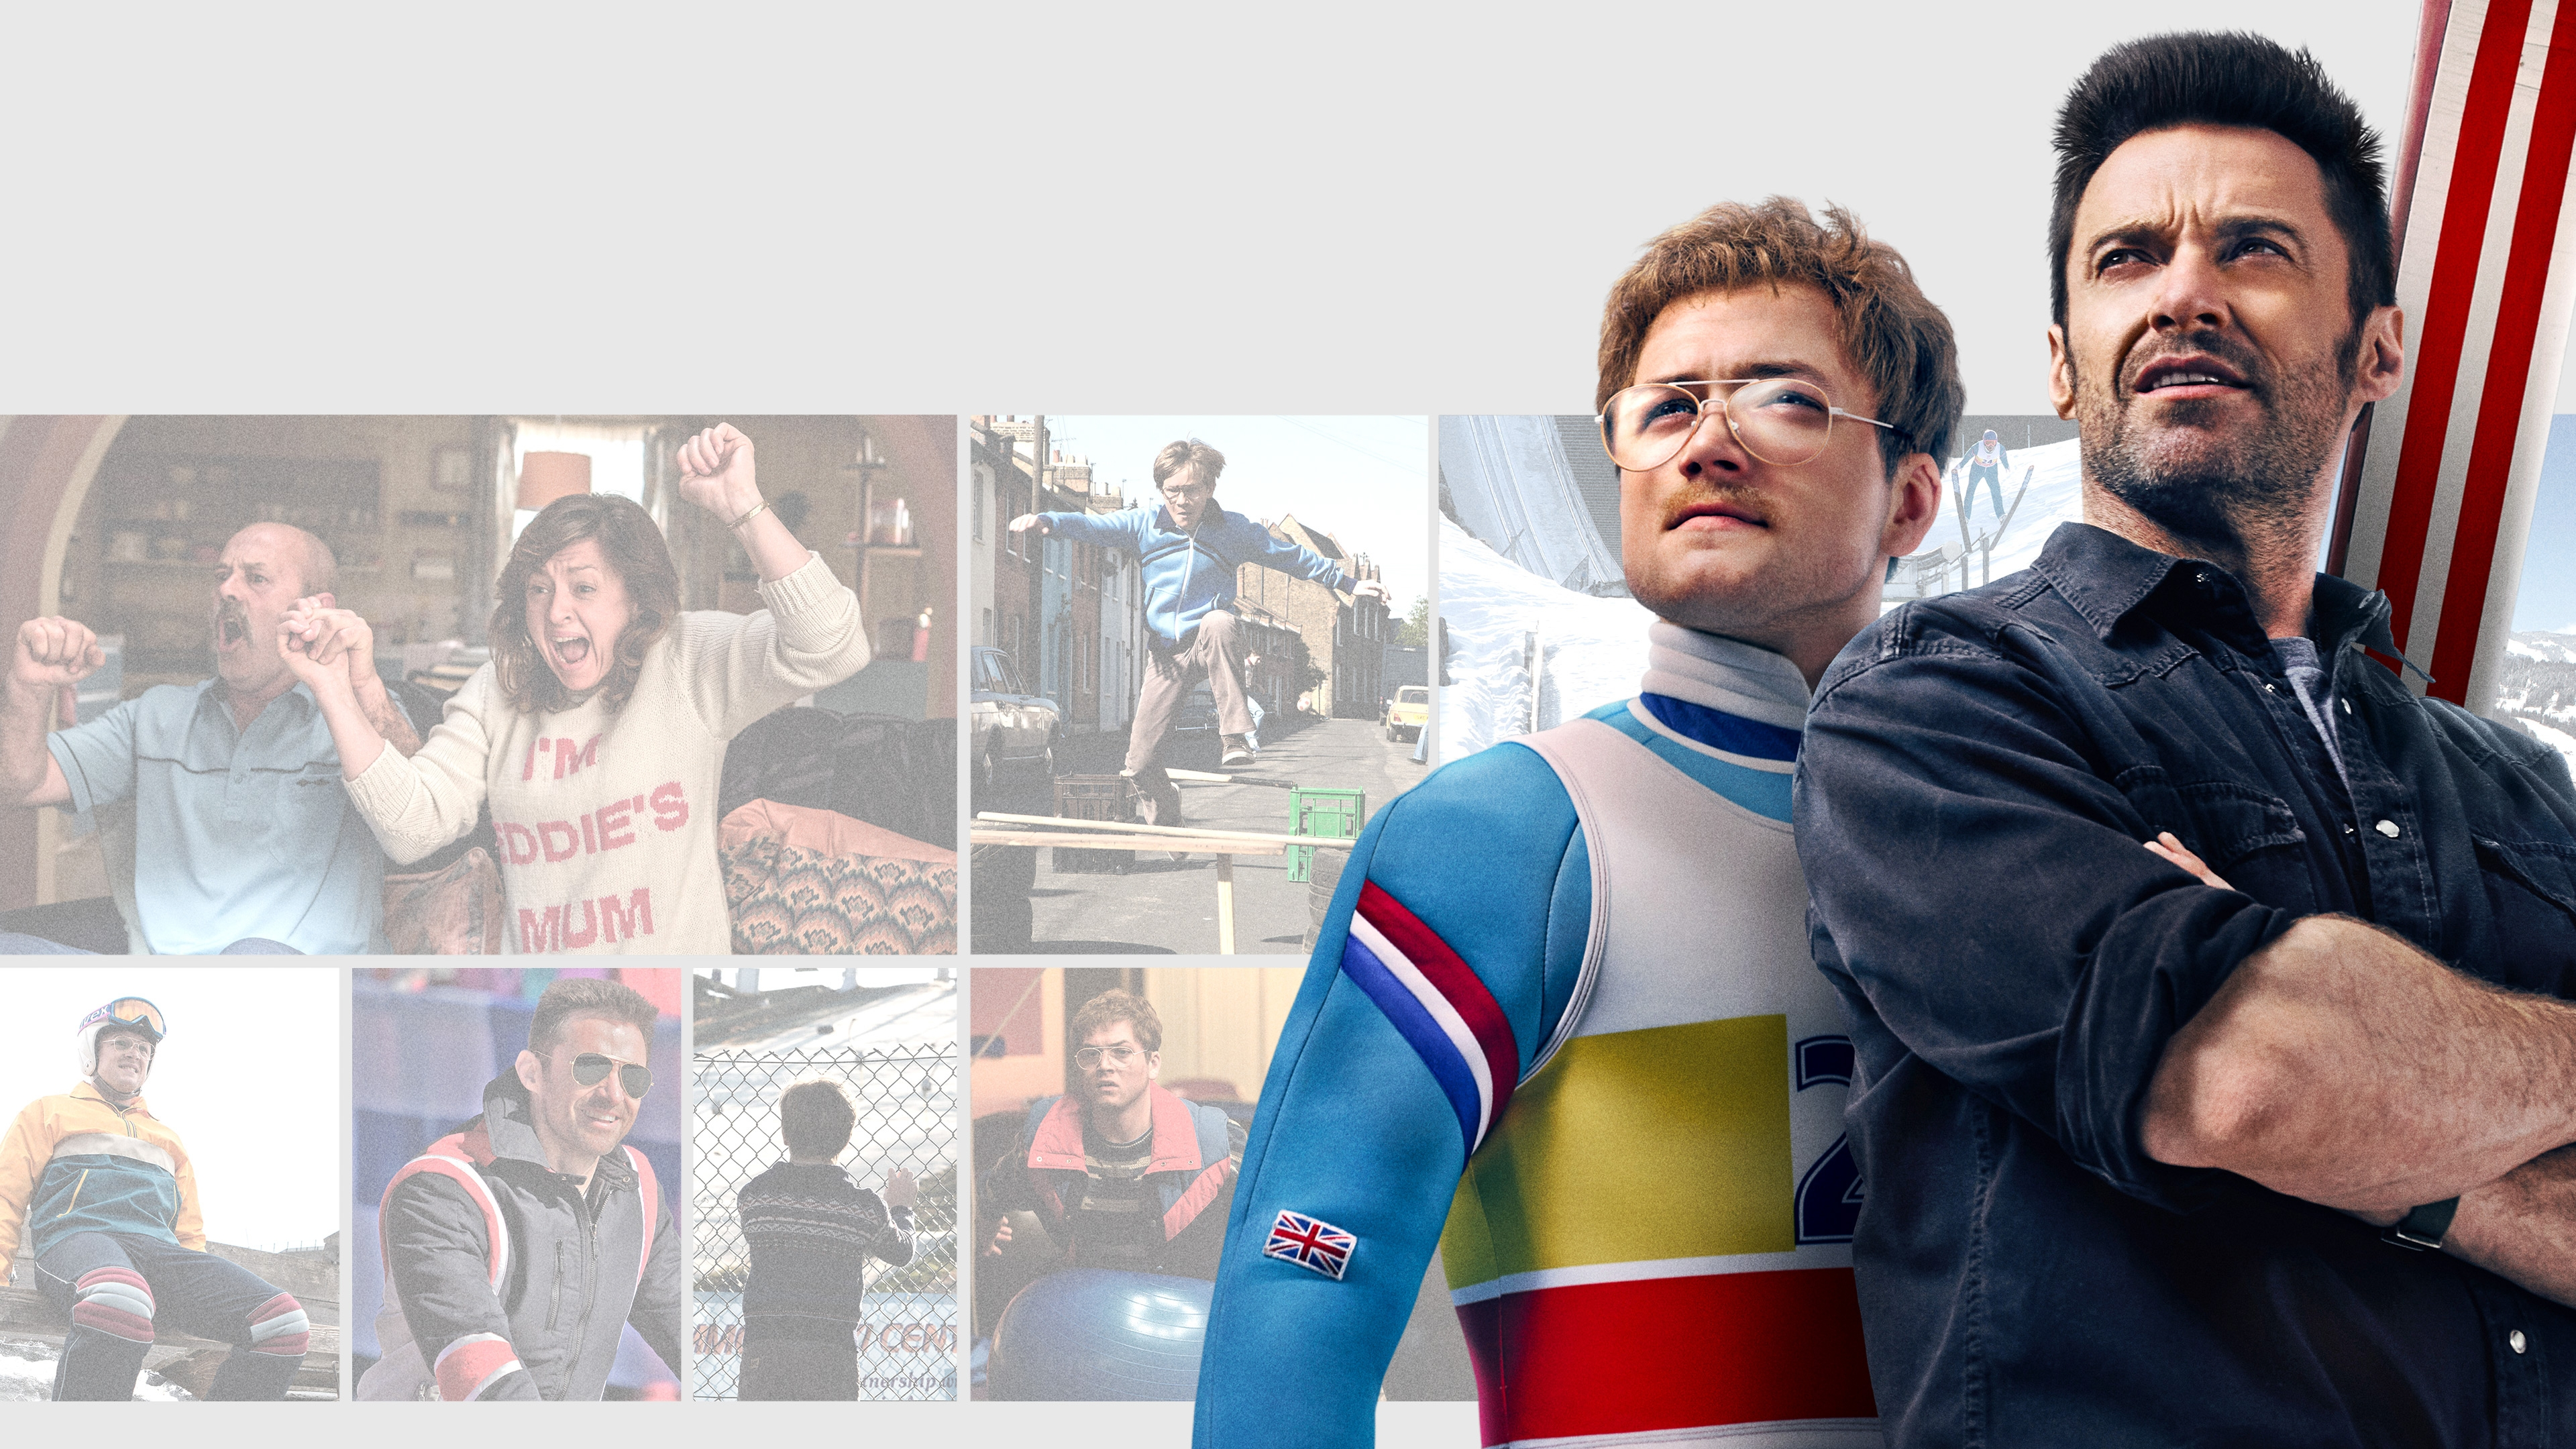 Eddie The Eagle Hugh Jackman wallpaper